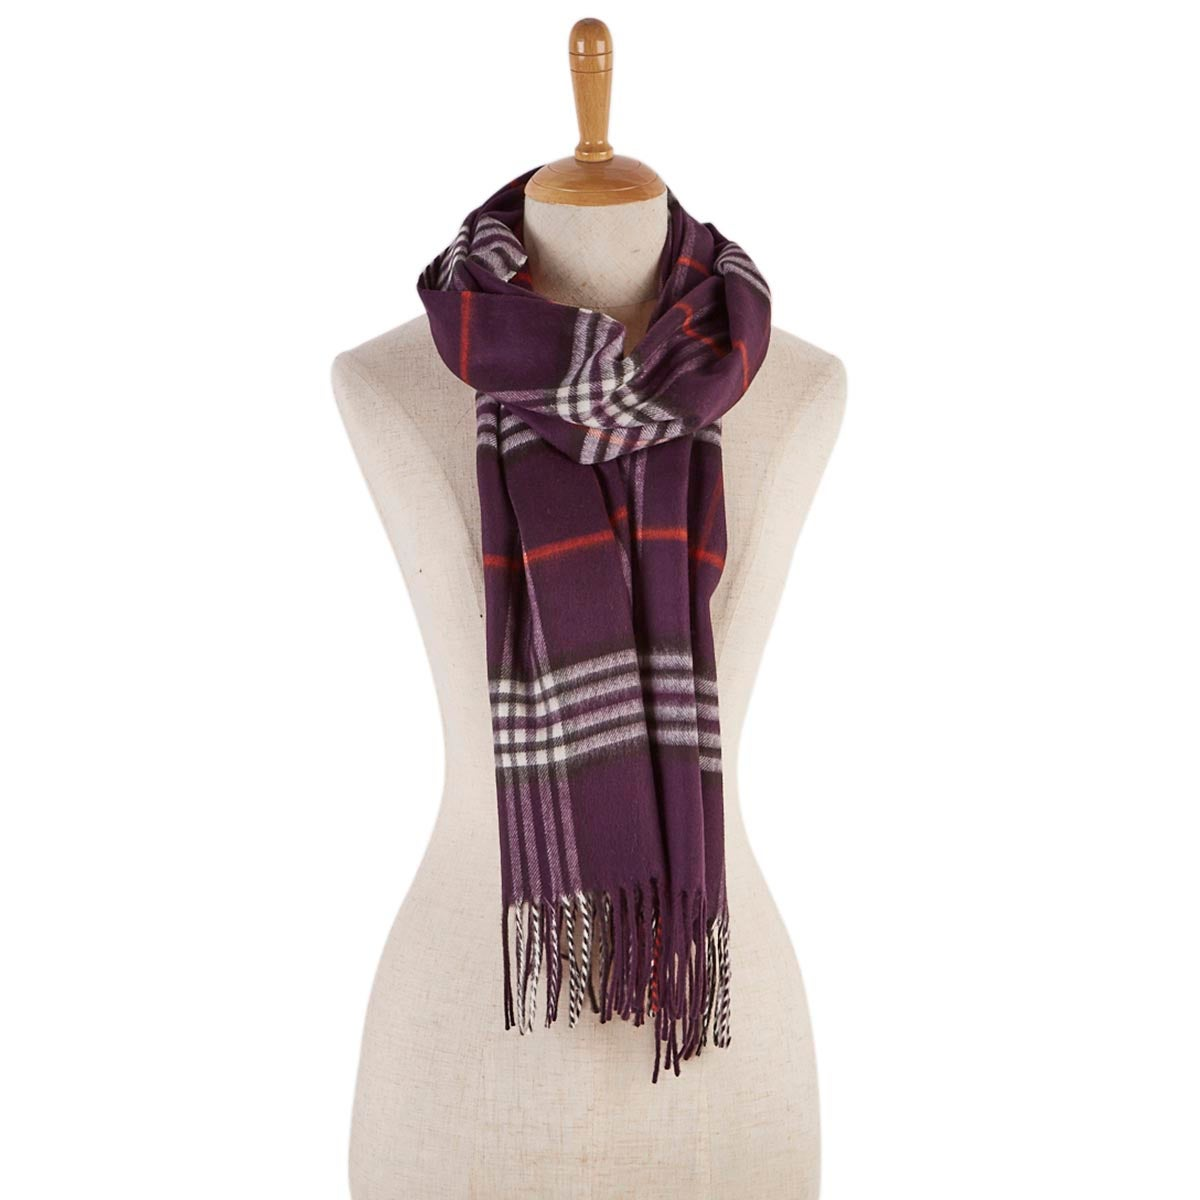 Lds Fraas Plaid plum scarf